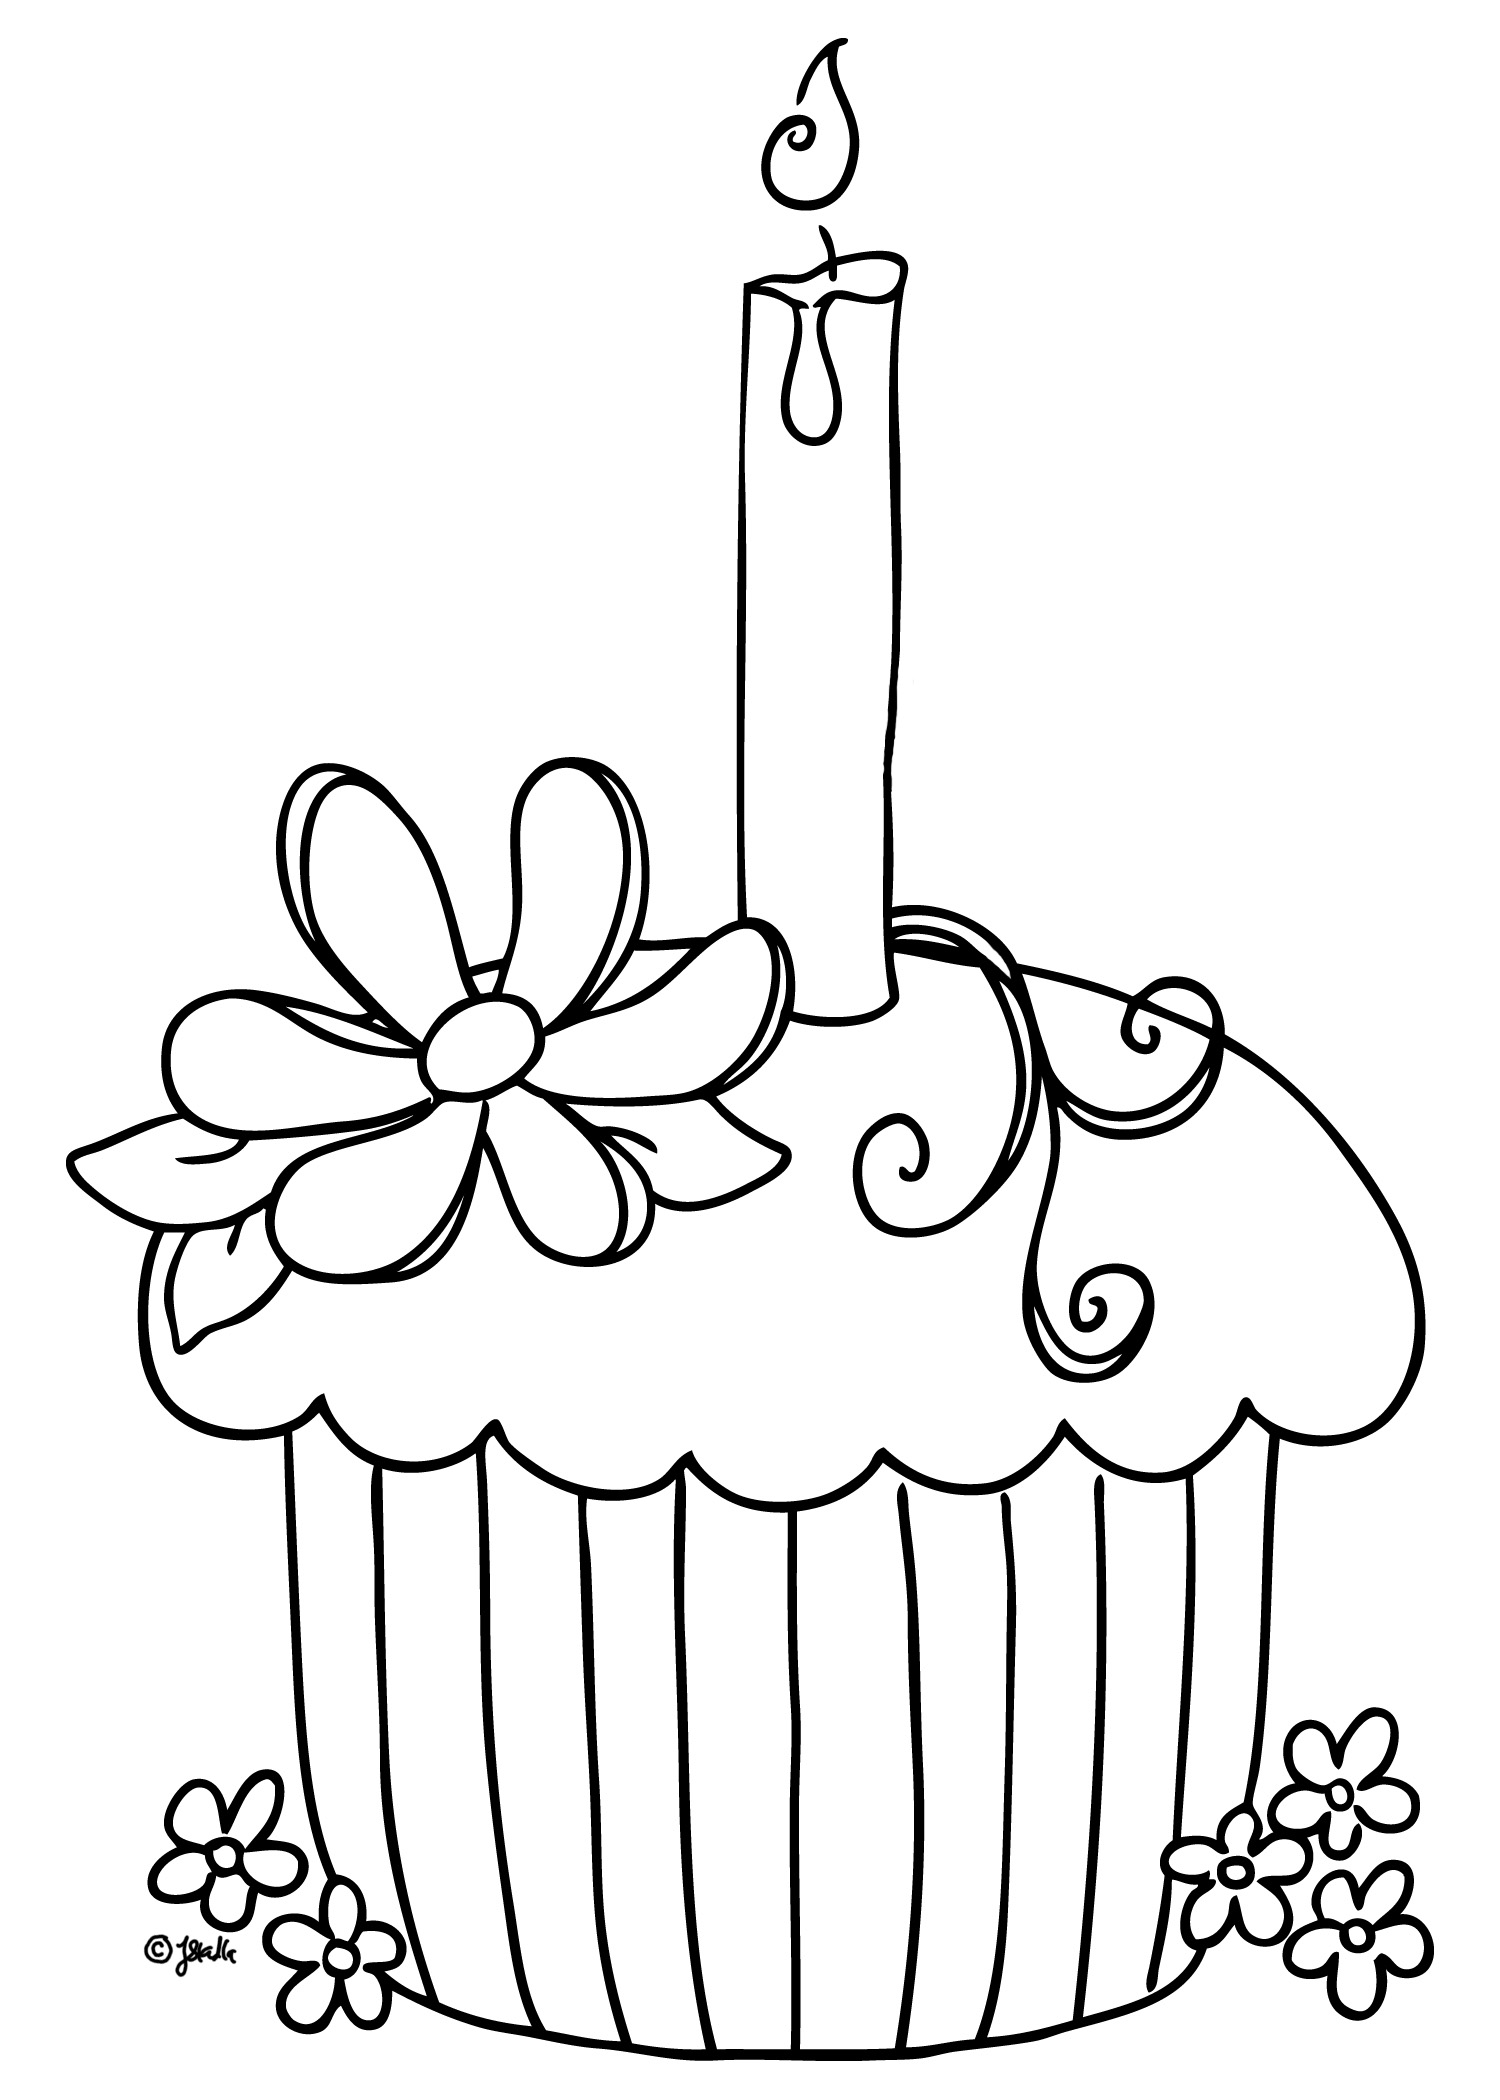 Colouring Pages For Cupcakes : Free Printable Cupcake Coloring Pages For Kids